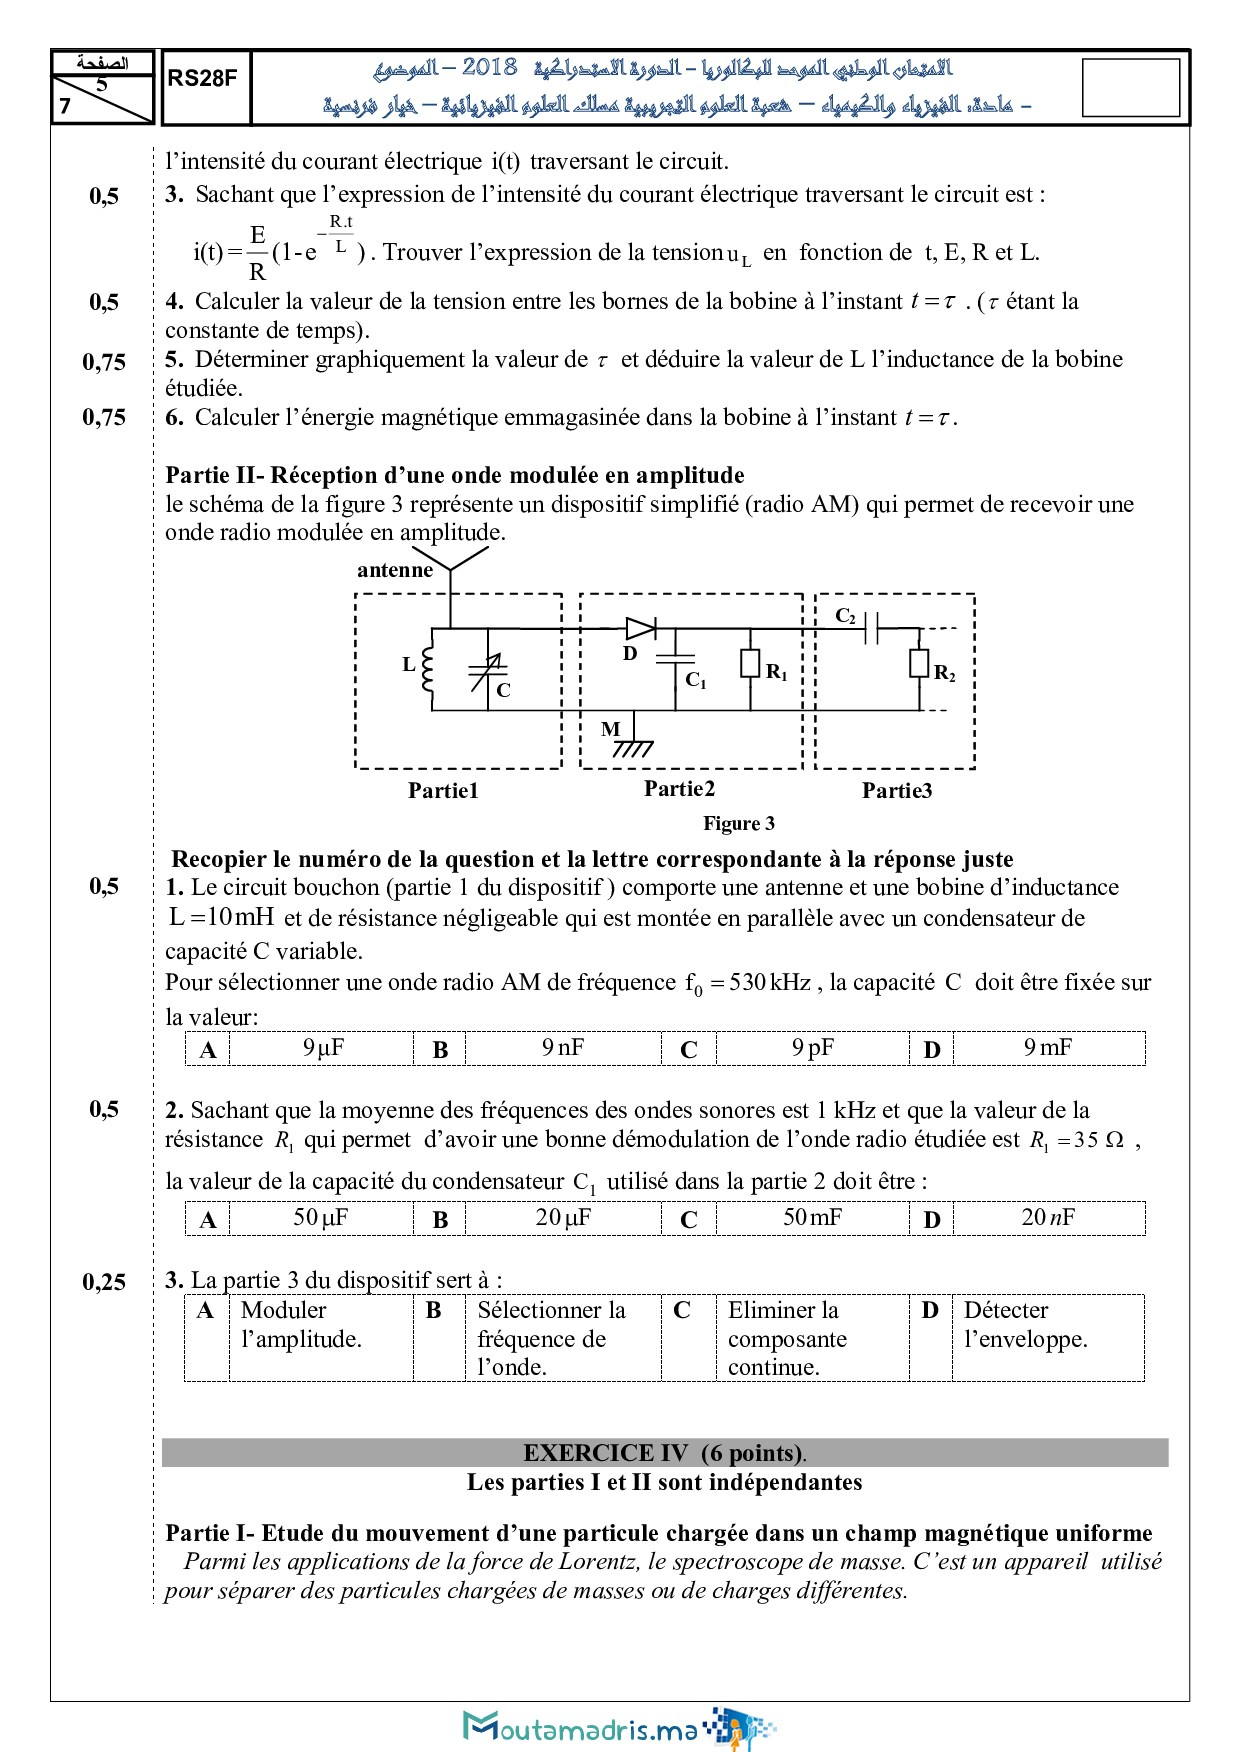 Examen National Physique-Chimie SPC 2018 Rattrapage - Sujet5.jpg